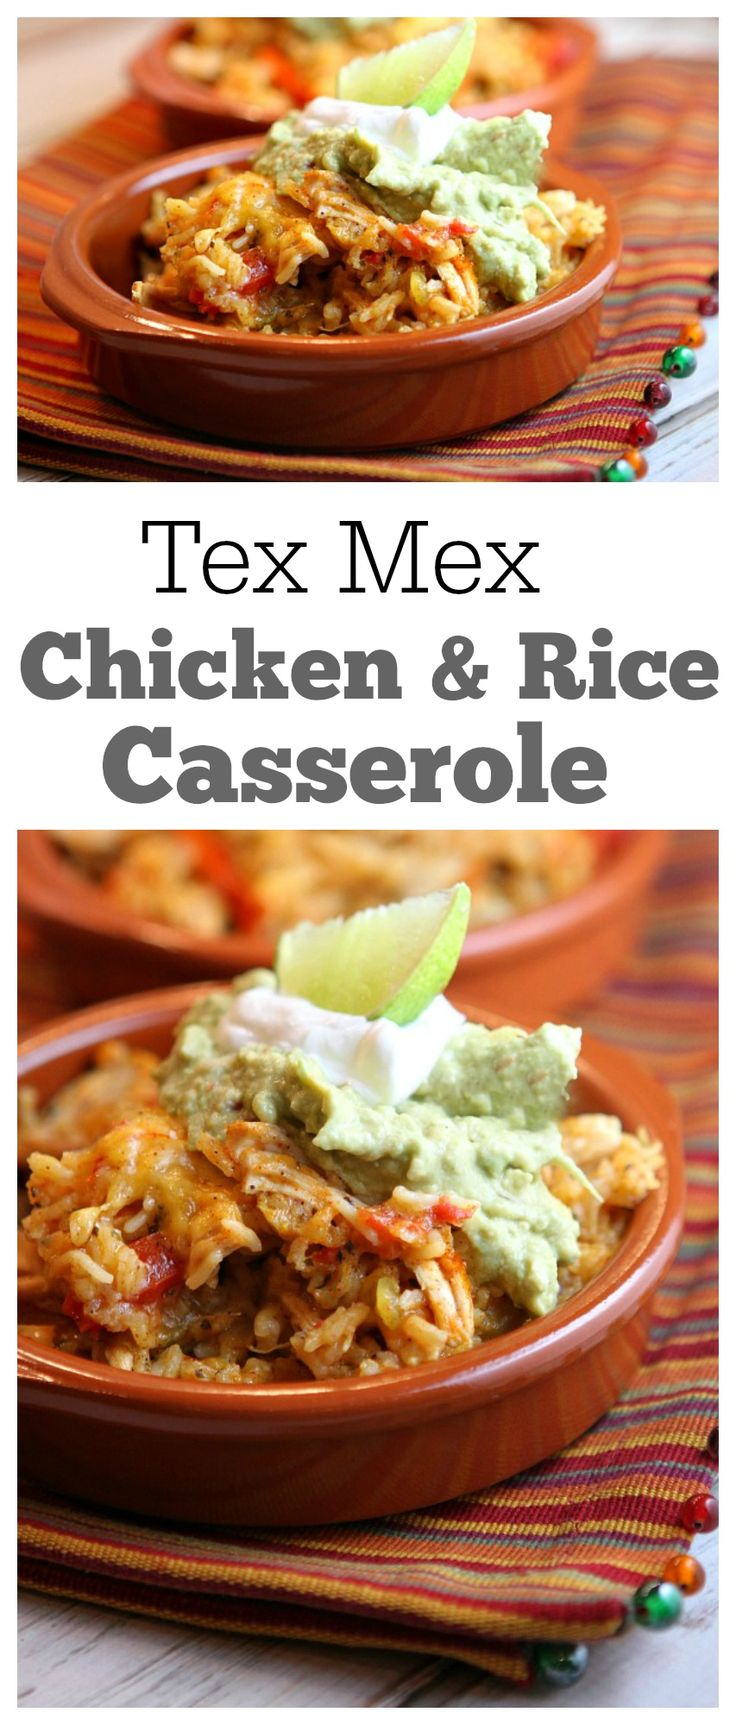 Tex Mex Chicken and Rice Casserole recipe: a quick and easy, family friendly dinner recipe that people will ask you to make again and again.  I made this recipe 20 years ago when I first got married, so it has been a favorite for a long time!